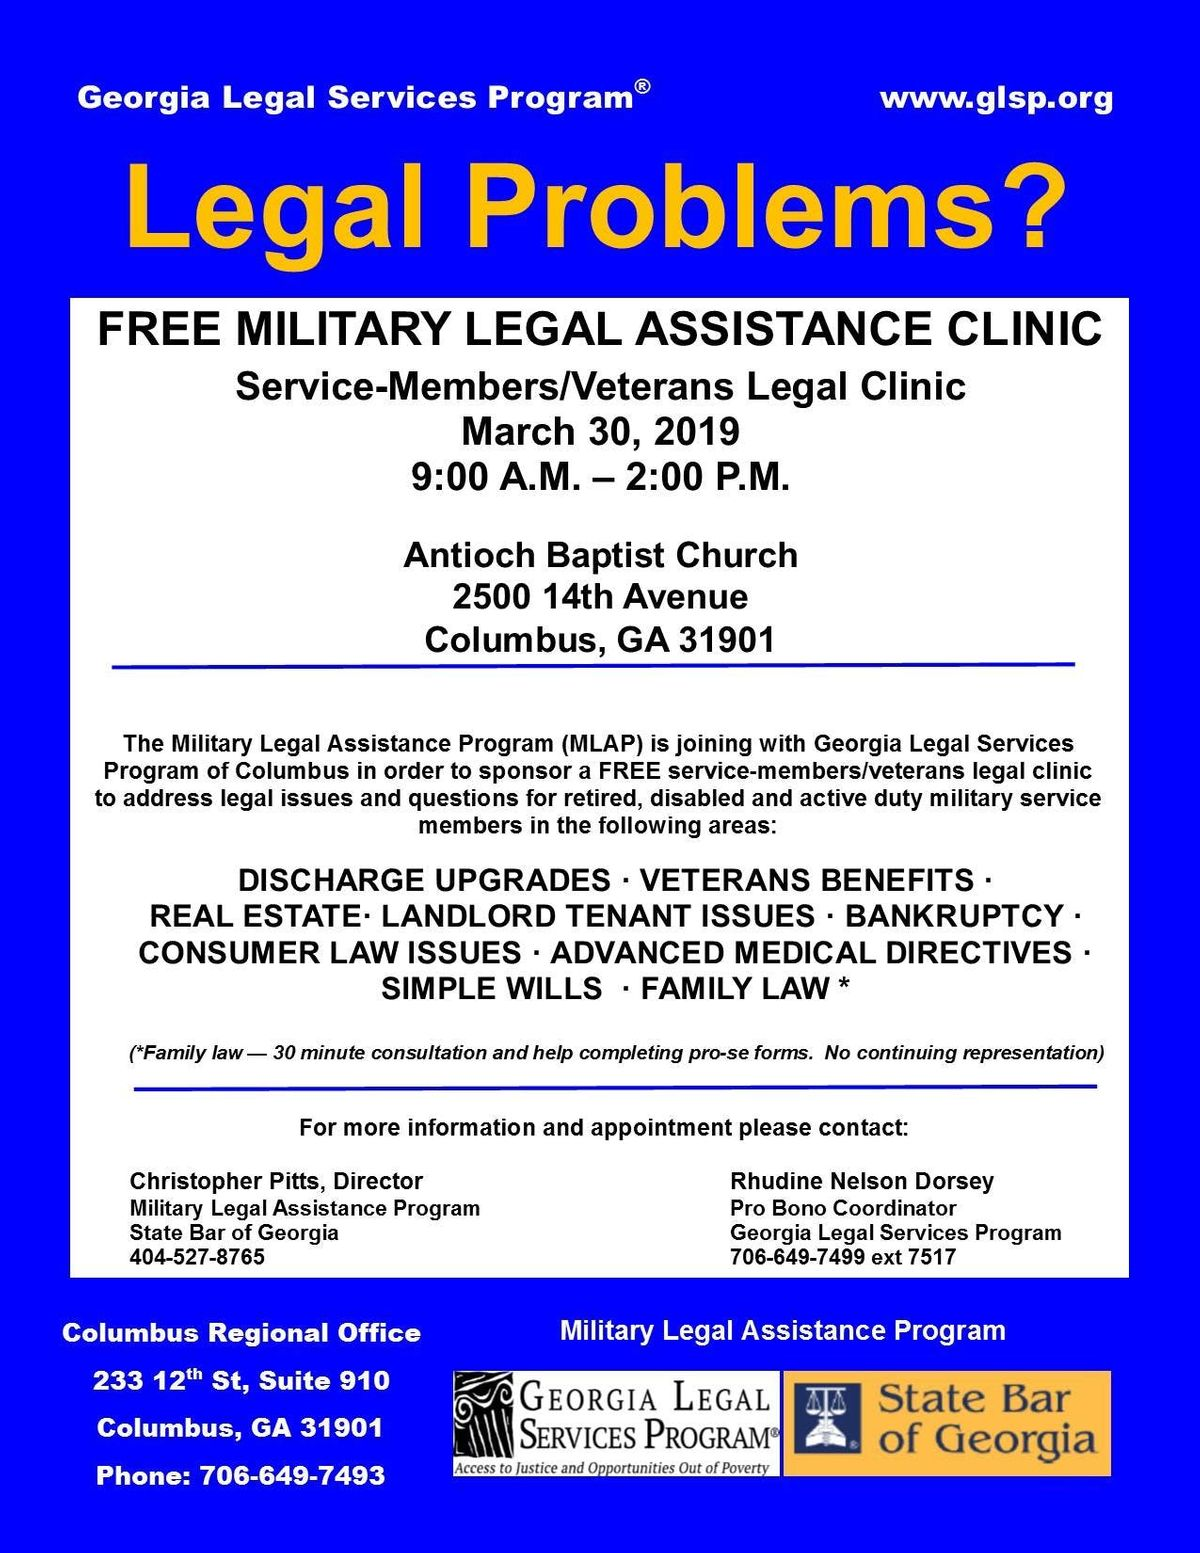 FREE MILITARY LEGAL ASSISTANCE CLINIC at Antioch Baptist Church